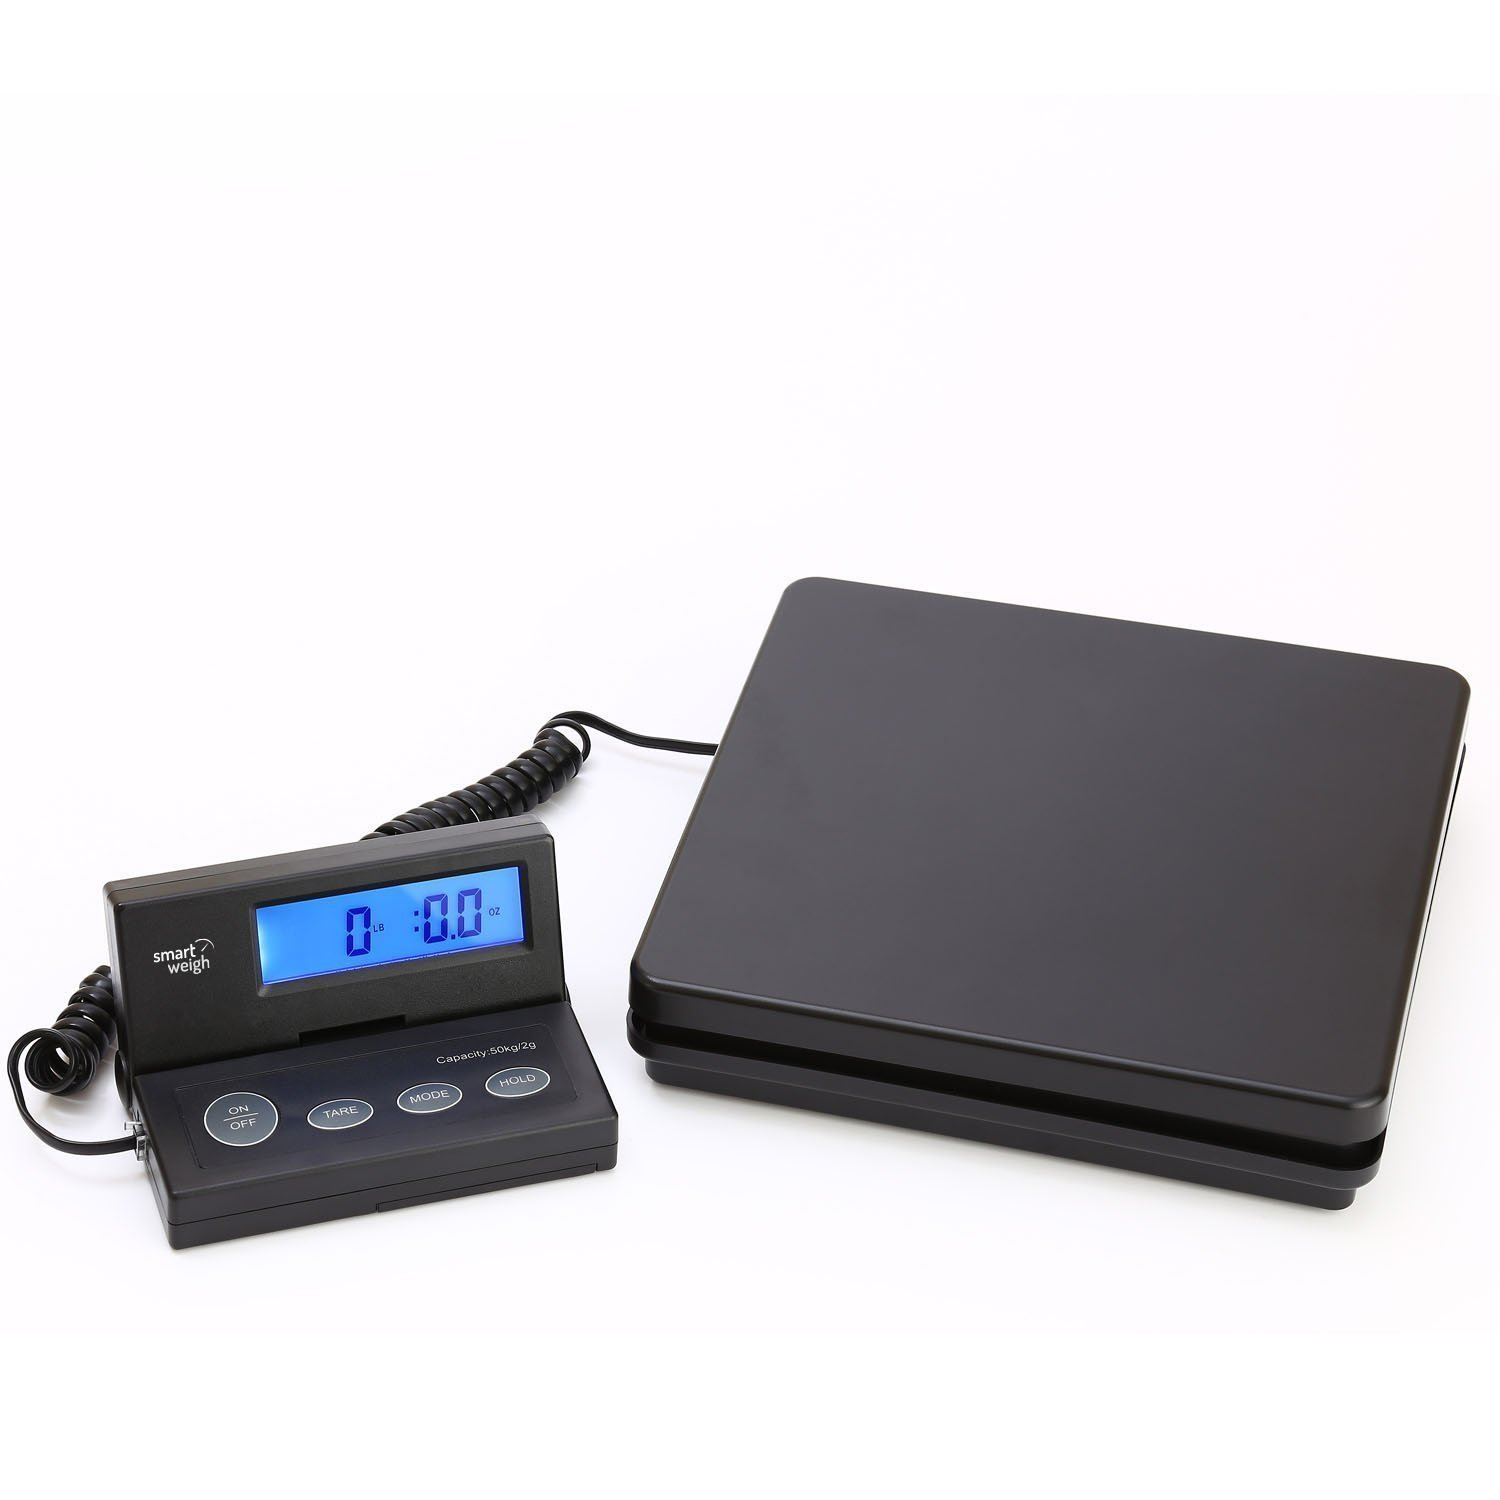 Smart Weigh Digital Postal Scale, 110 lbs Capacity, UPS USPS Scale W AC Adapter ACE110